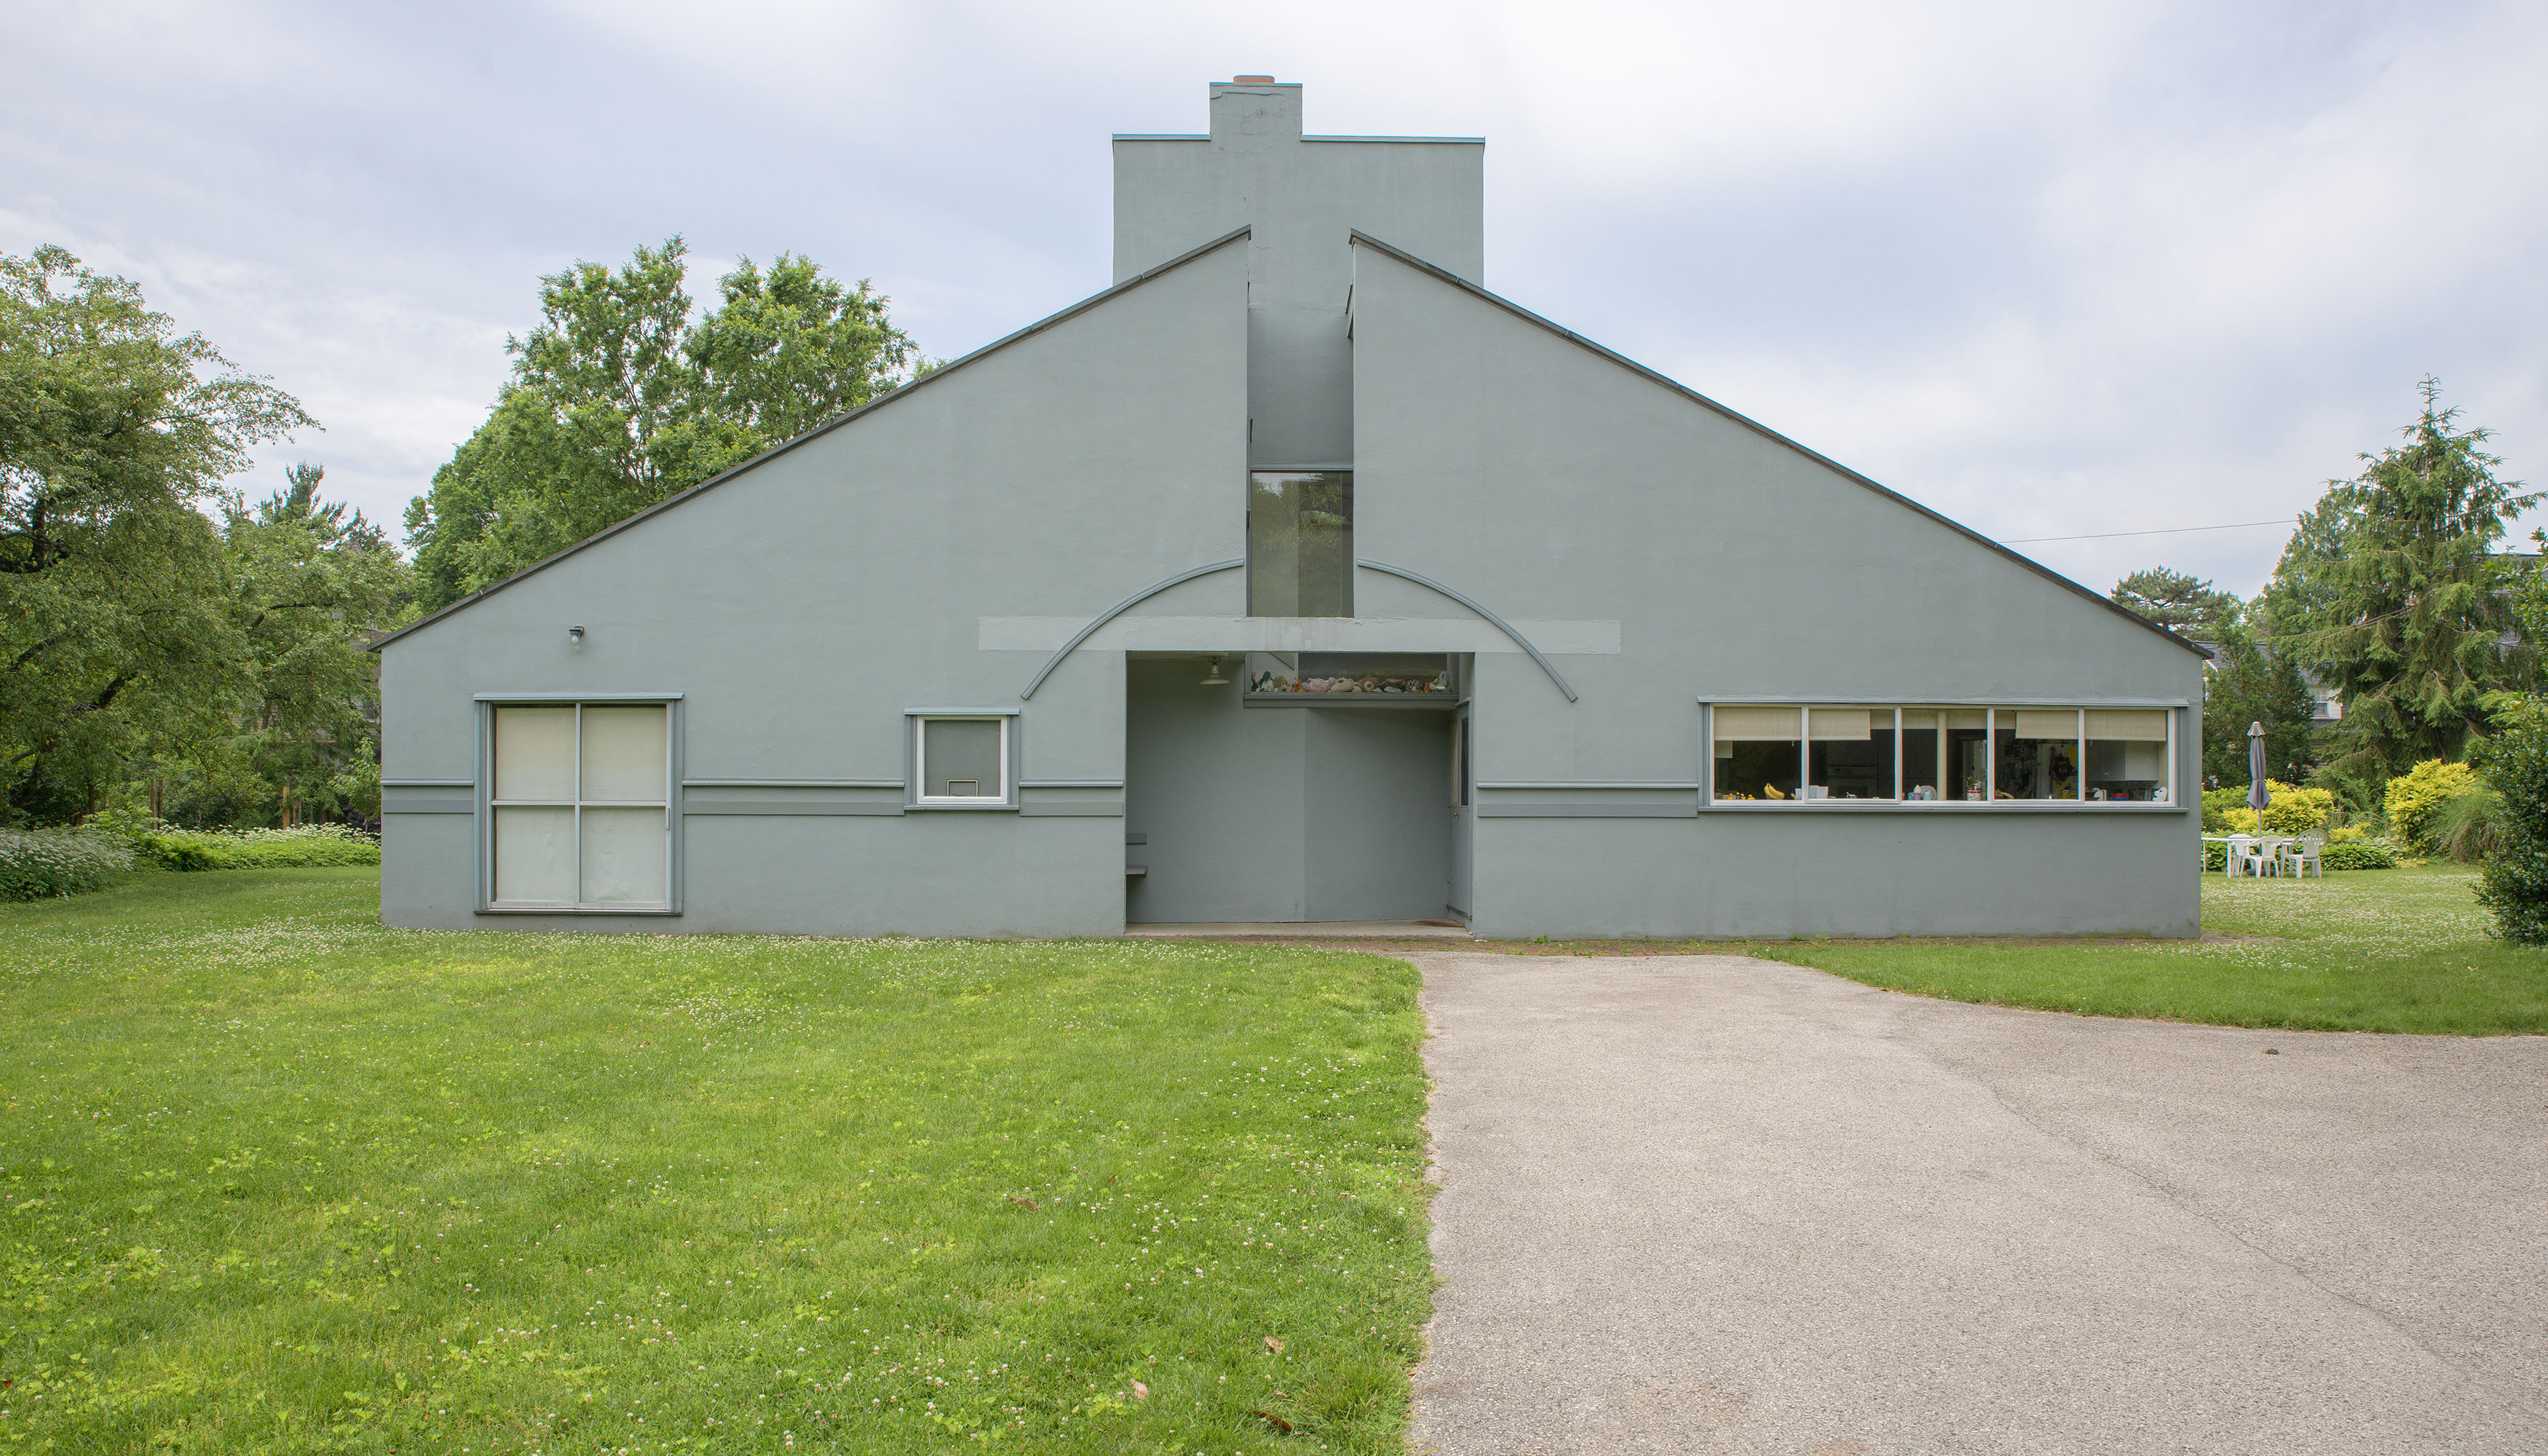 The Vanna Venturi house in Philadelphia. The exterior of the house is light blue with a sloped roof and large entrance. There is a path leading up to the entrance. There is a large green grass lawn adjacent to the path in front of the house.